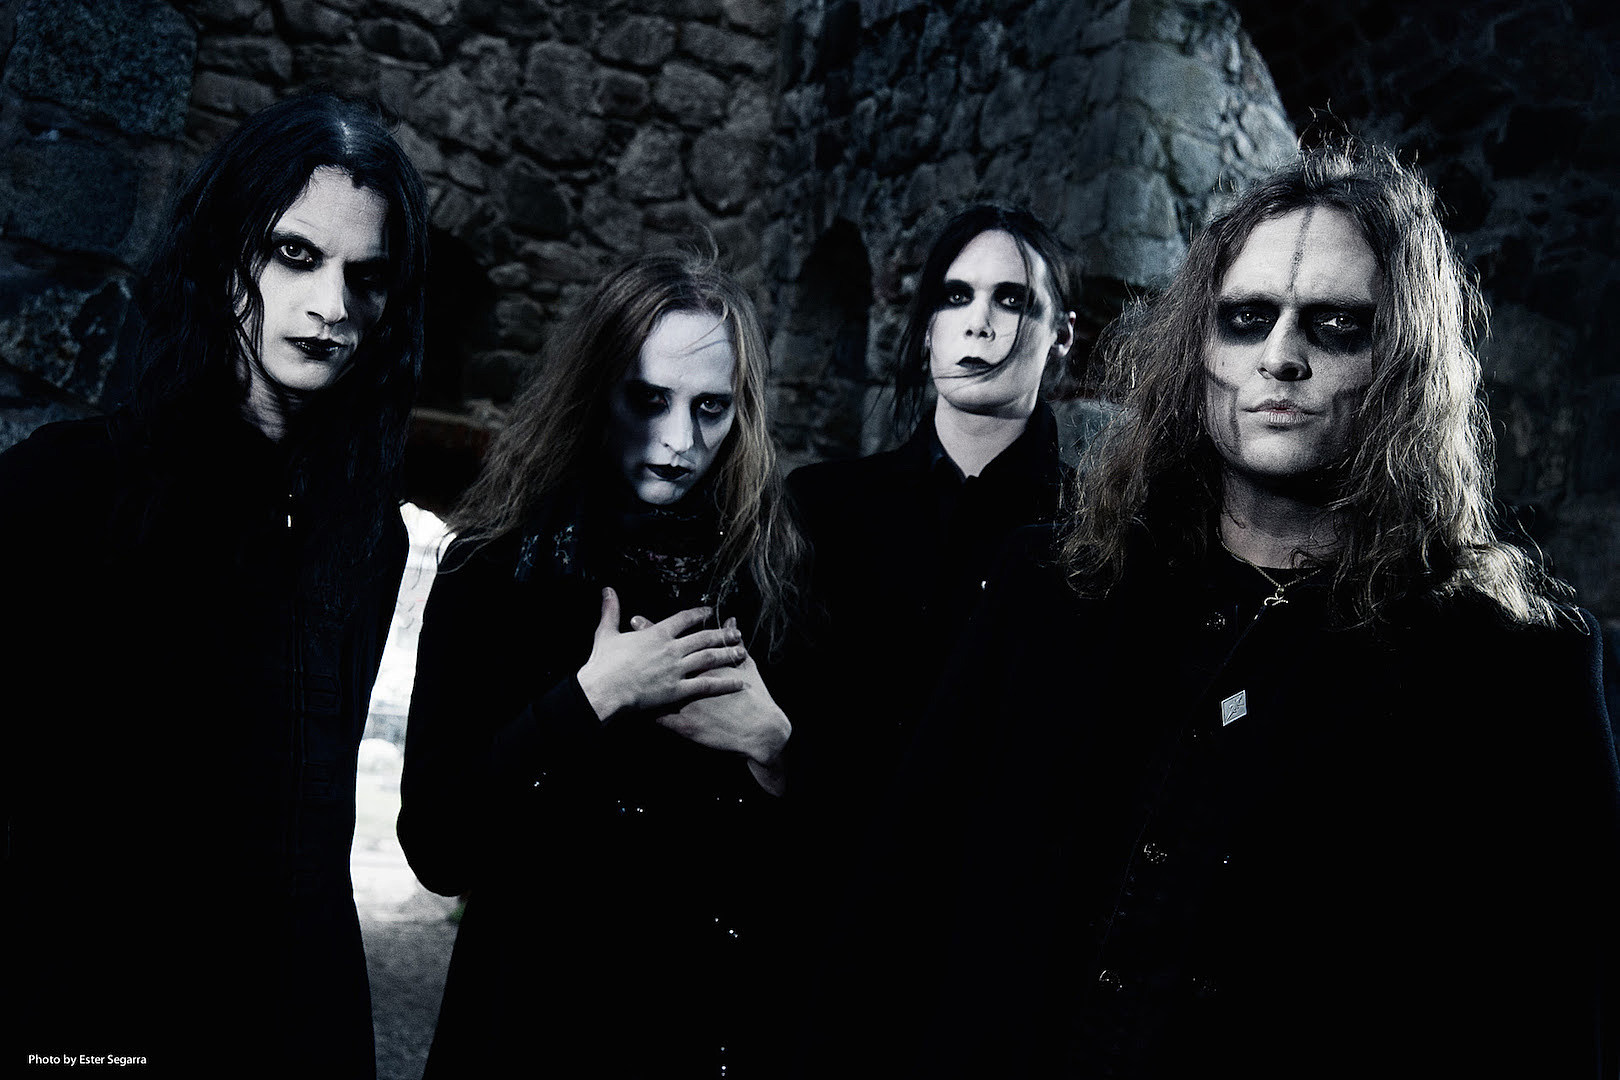 Tribulation's New Video Explores 'The World' of Ethereal Darkness